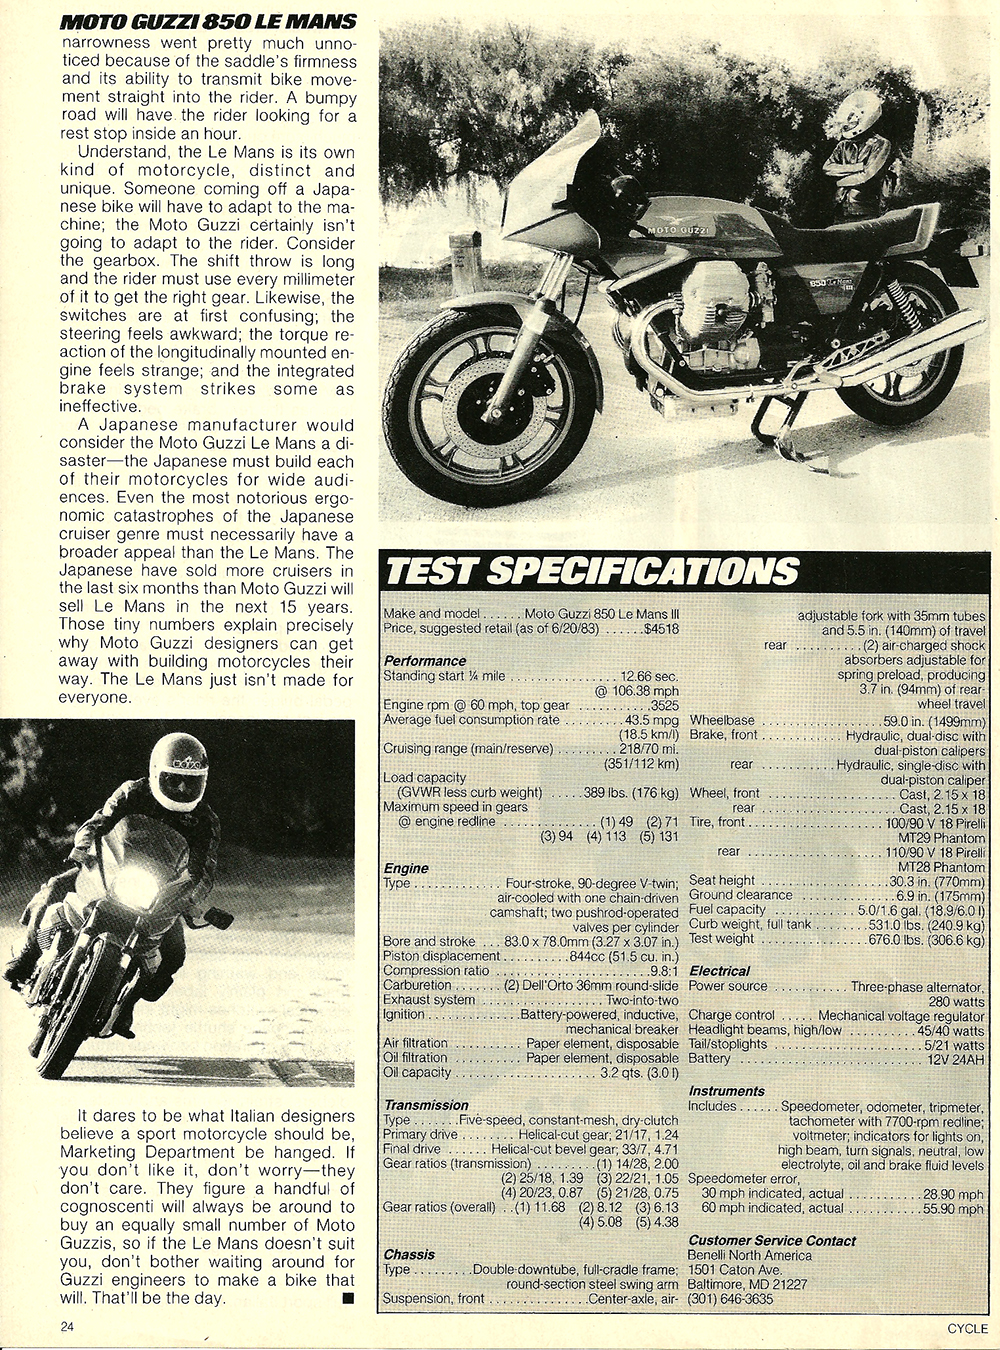 1983 Moto Guzzi 850 Lemans 3 road test 7.jpg